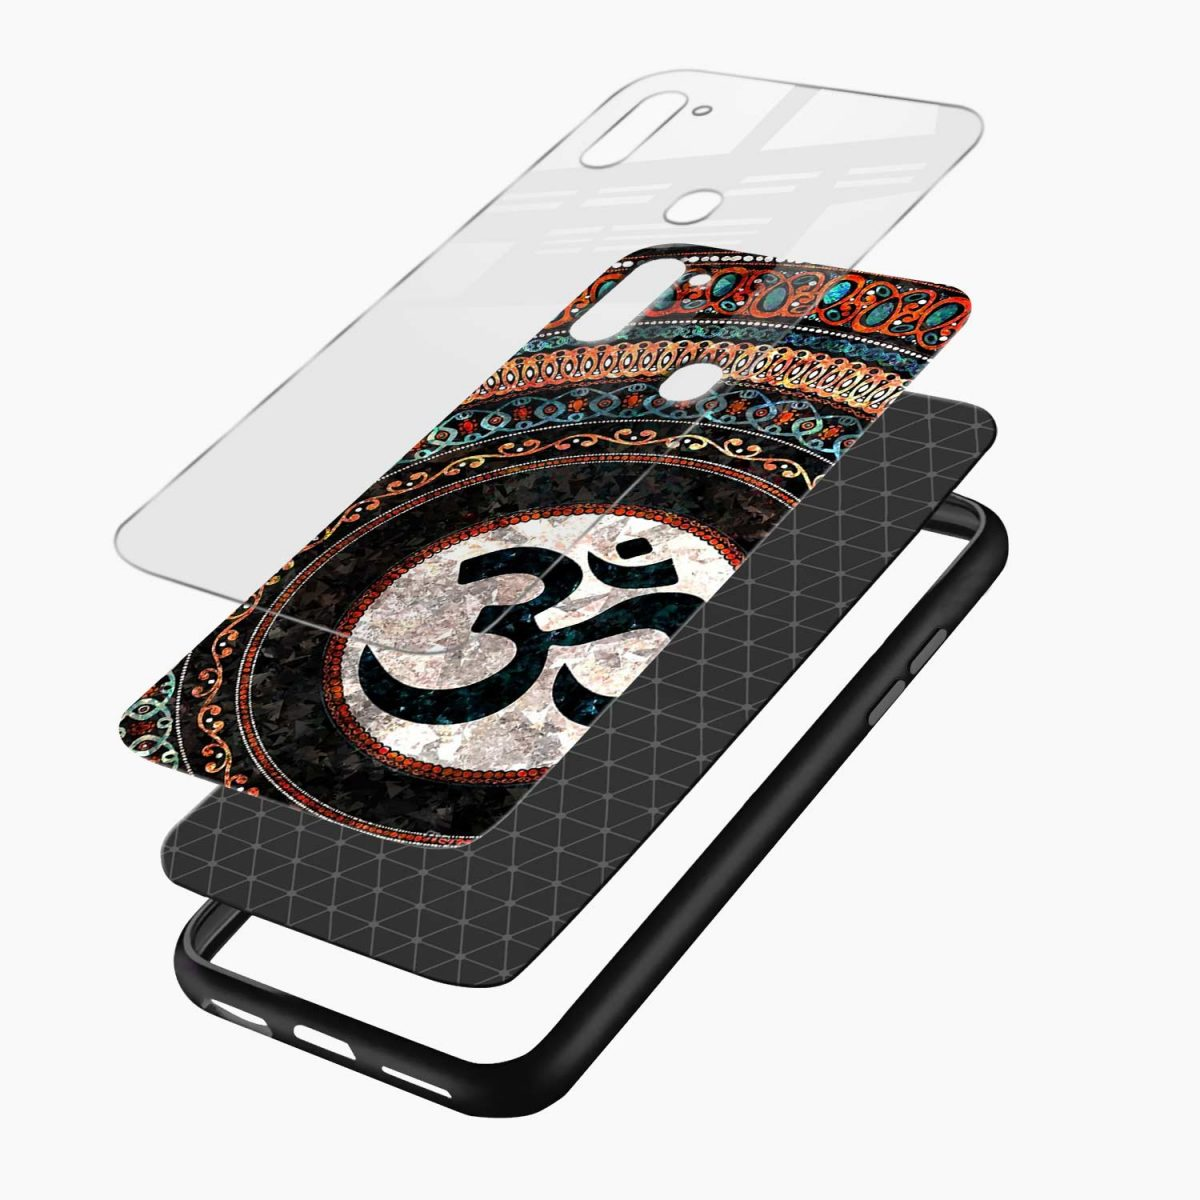 om glass layers view samsung galaxy m11 back cover